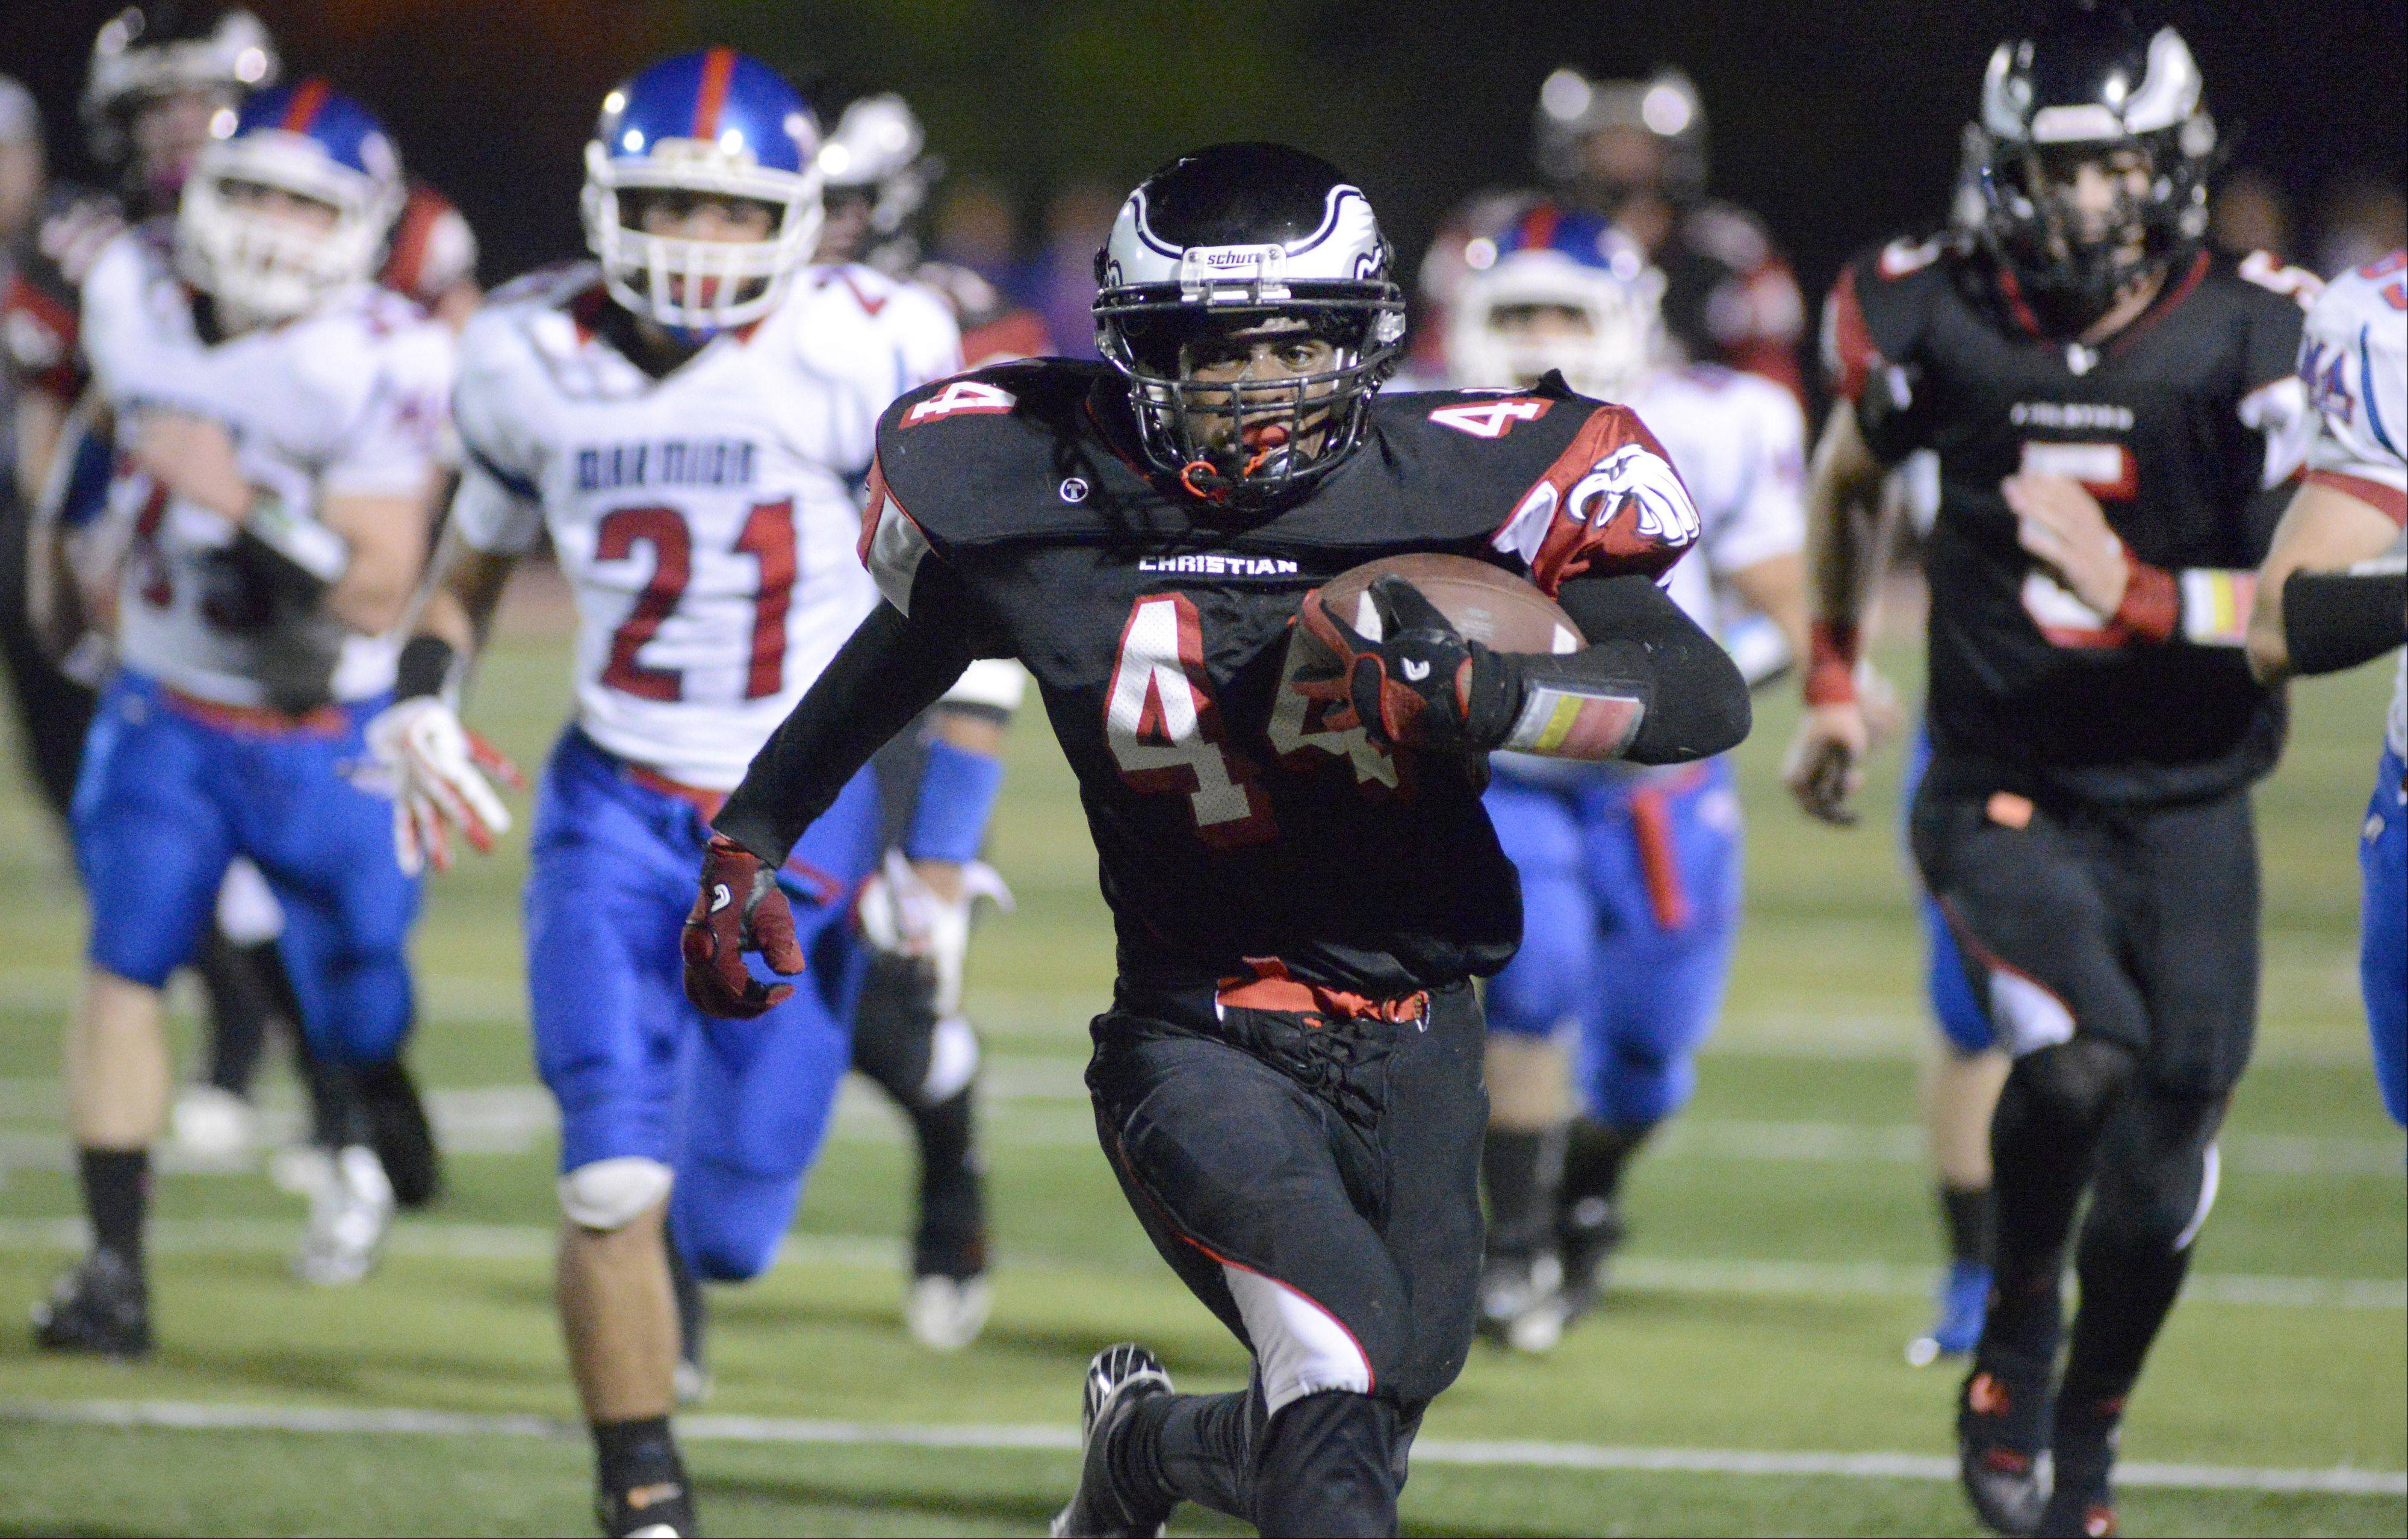 Aurora Christian's Legend Smith sprints to the end zone in the second quarter.